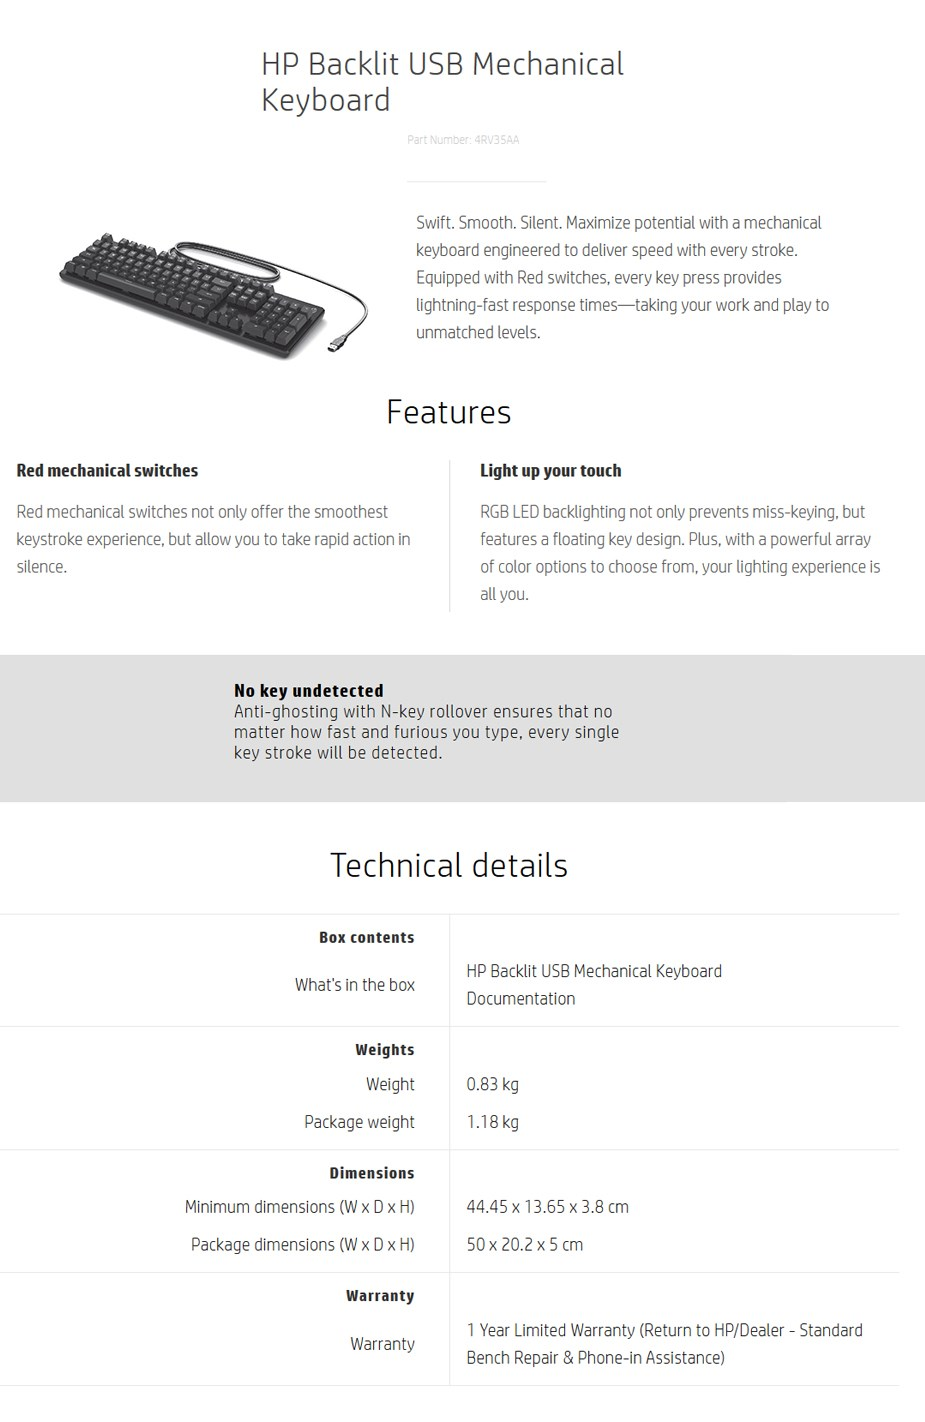 HP Backlit USB Mechanical Keyboard Display Overview 1